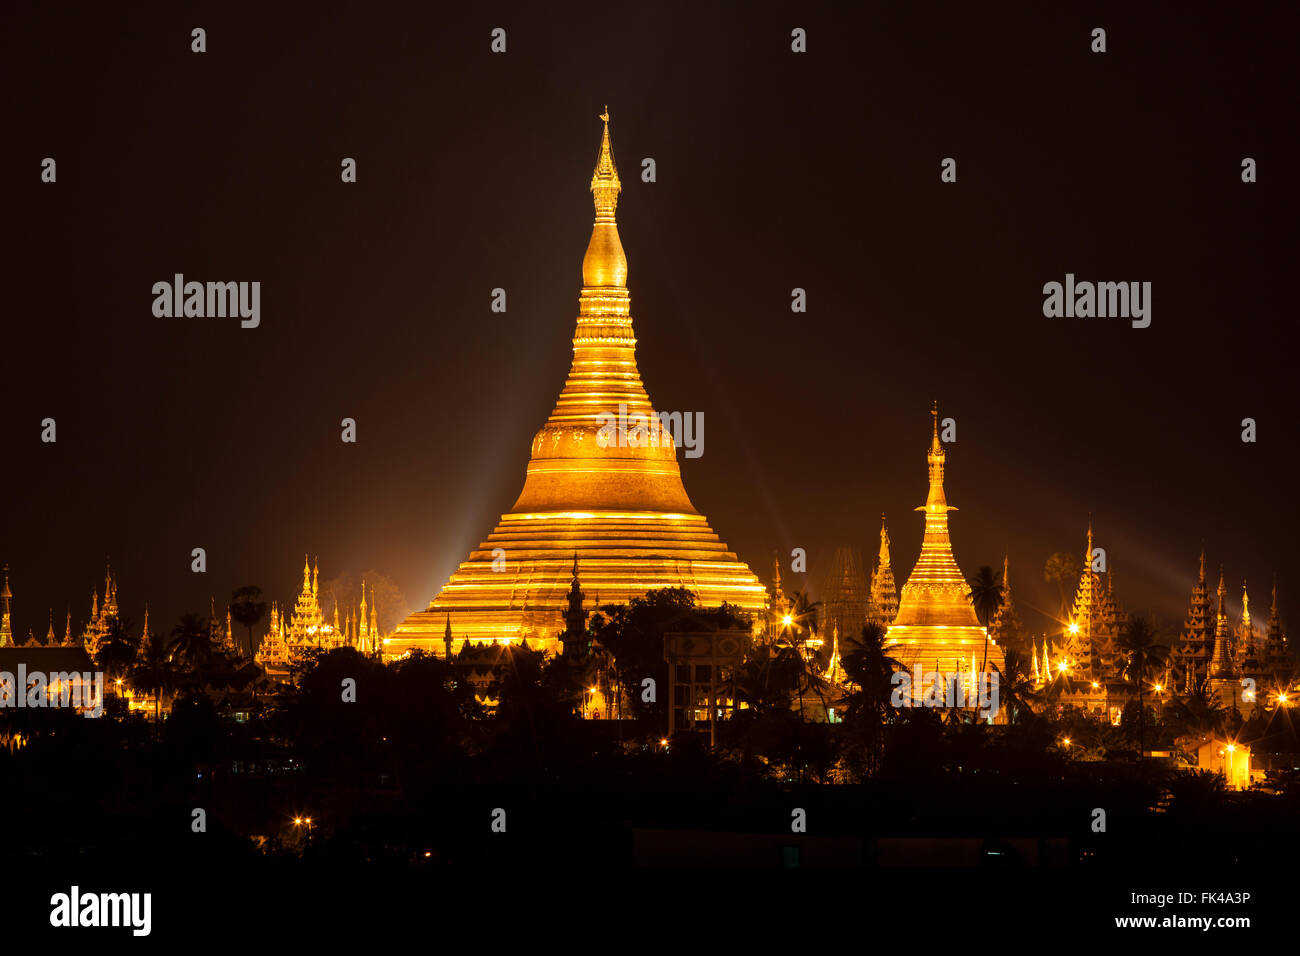 Shwedagon Pagoda in Yangon City, Burma with Beautiful Evening Light: the beautiful golden pagoda, - Stock Image